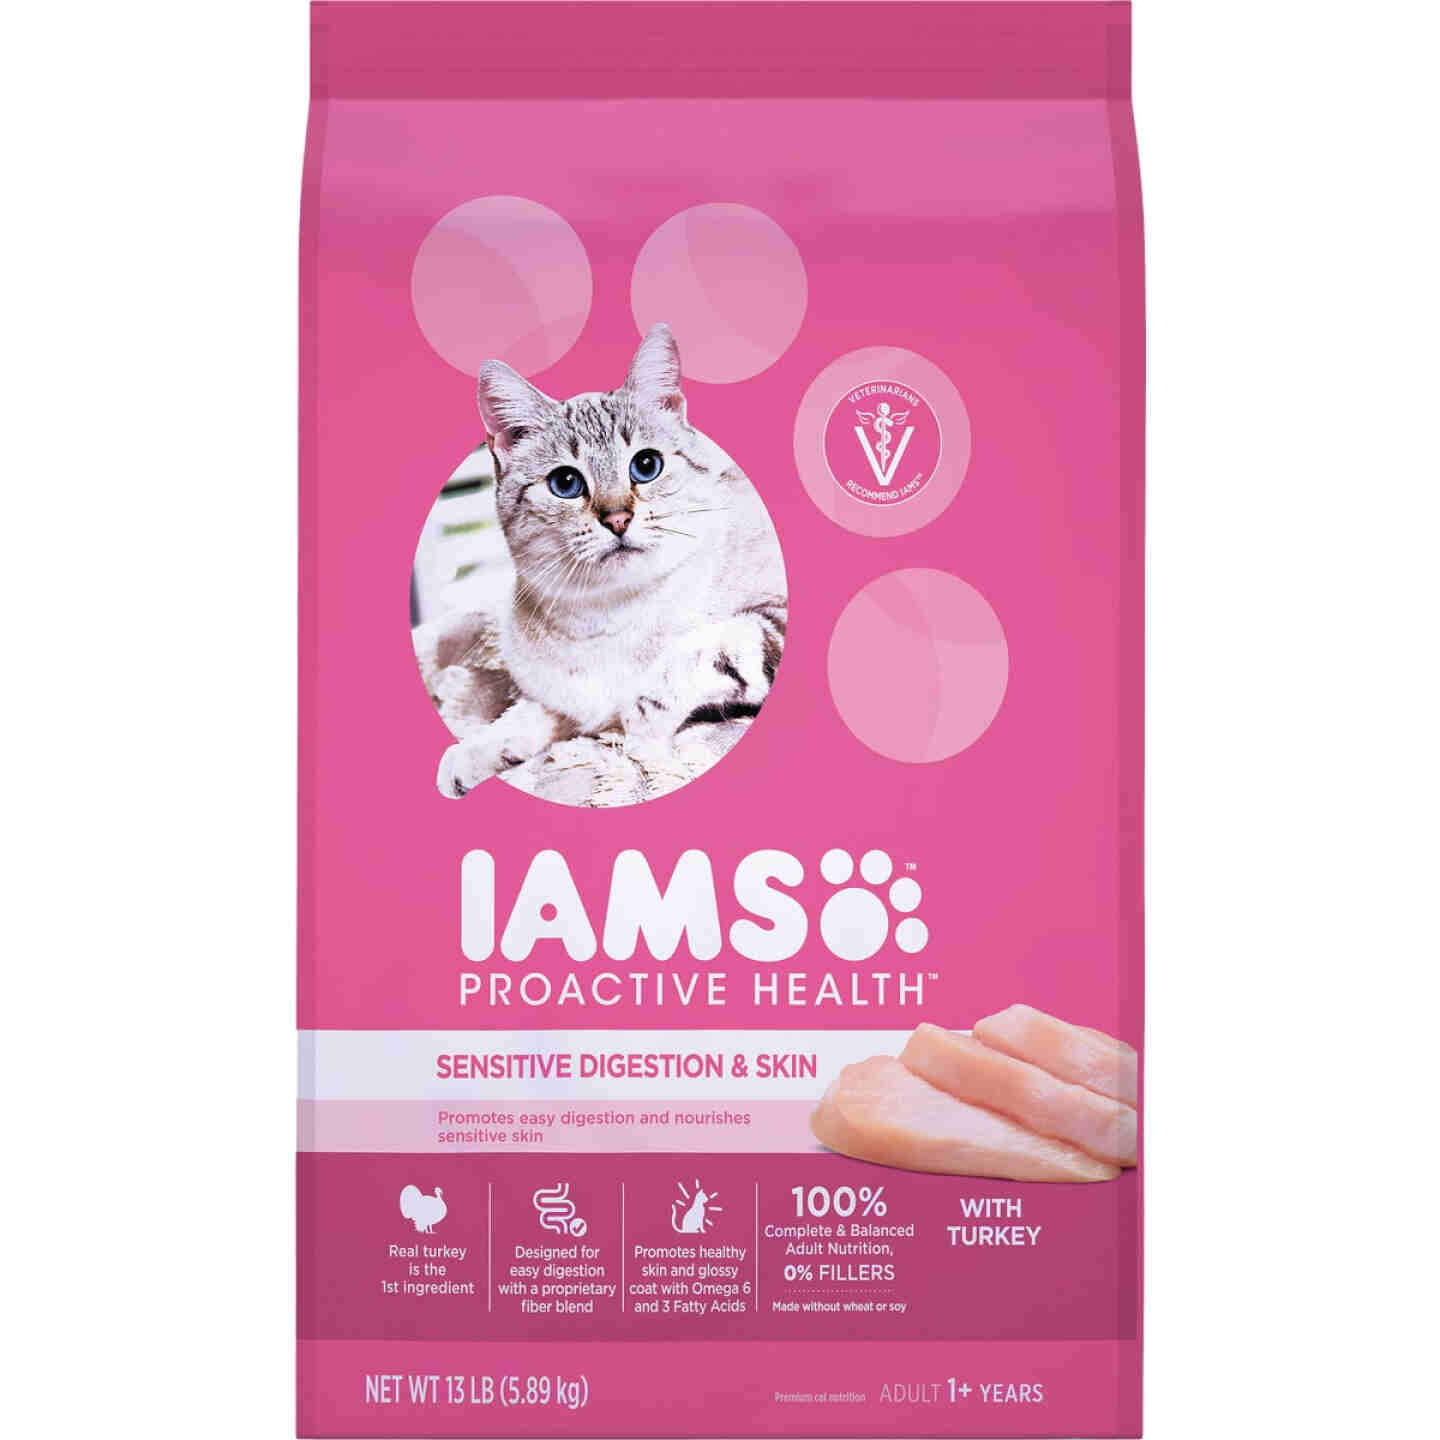 Iams Proactive Health Sensitive Digestion & Skin Formula 13 Lb. Turkey Flavor Adult Dry Cat Food Image 1